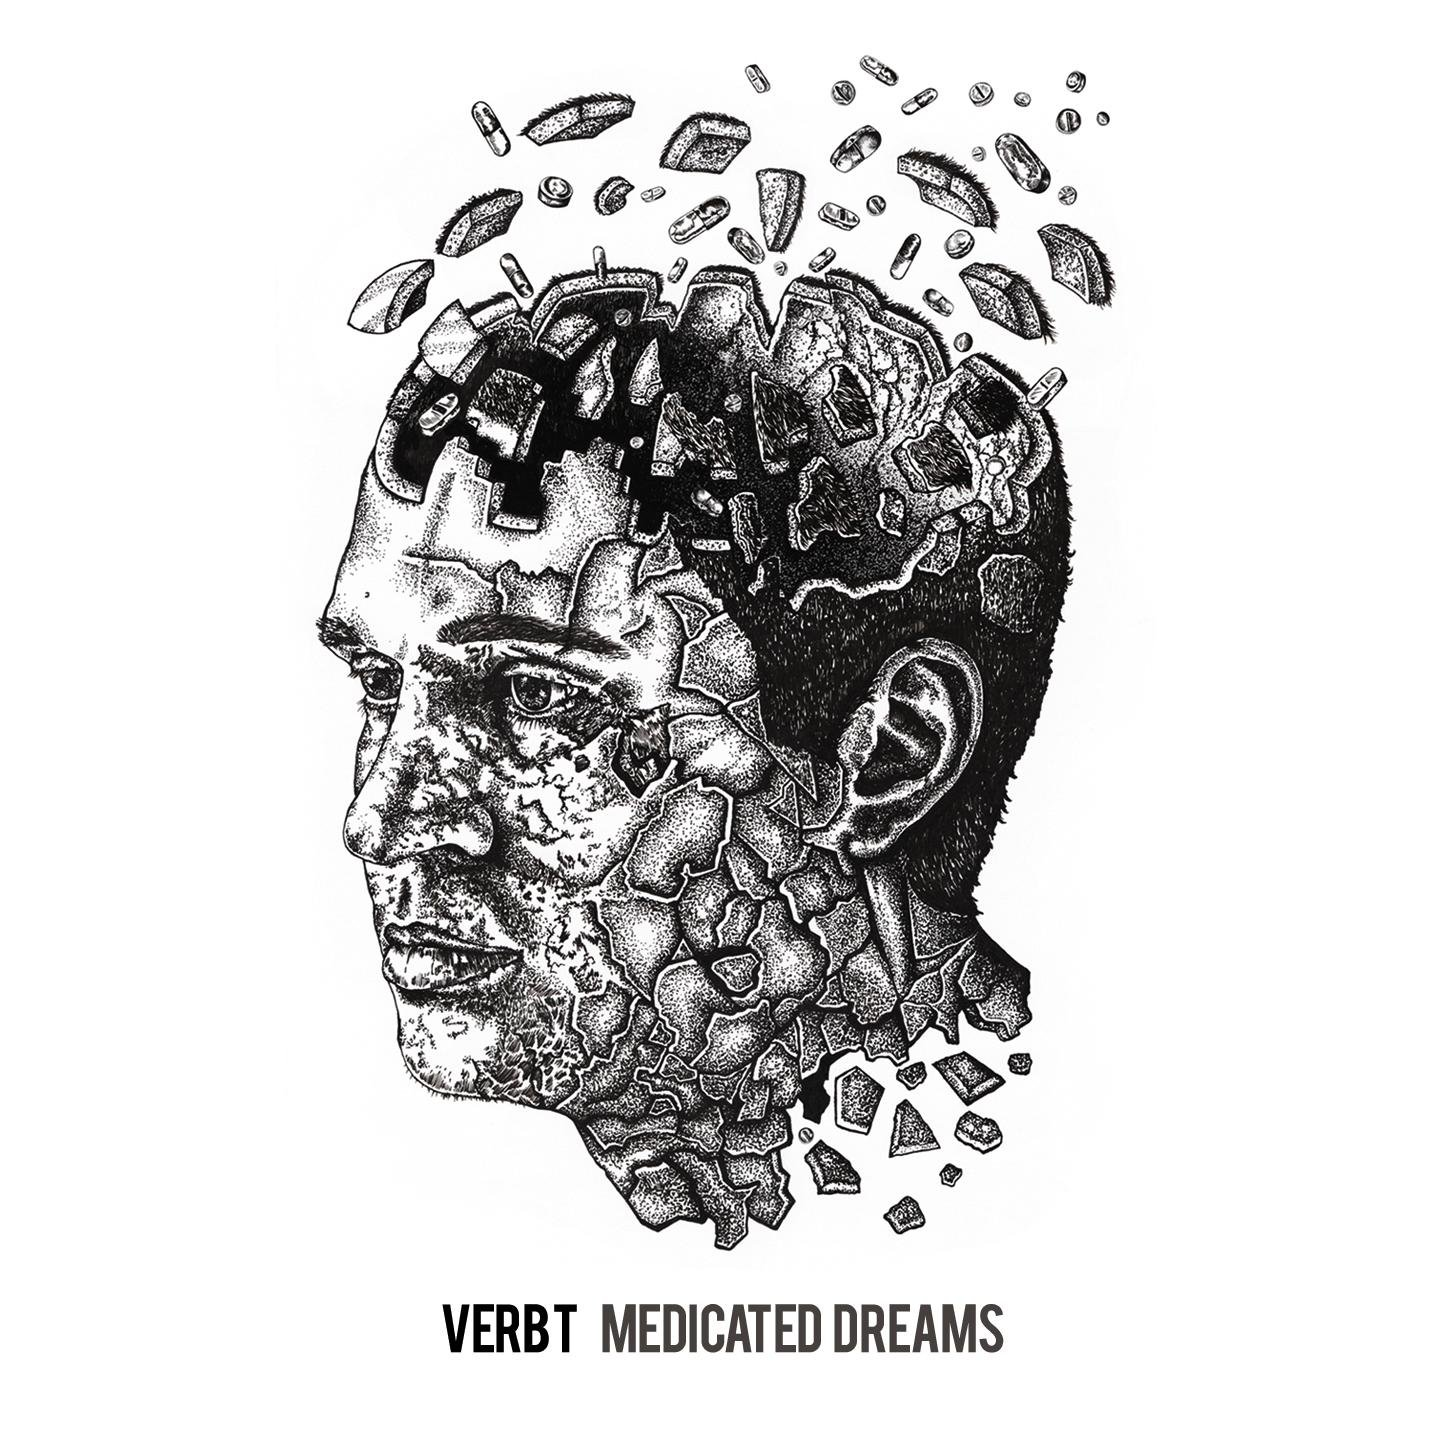 BRITHOPTV: [New Release] Verb T (@realverbt) - 'Medicated Dreams' Album OUT NOW! [Rel. 12/09/14] | #UKRap #UKHipHop